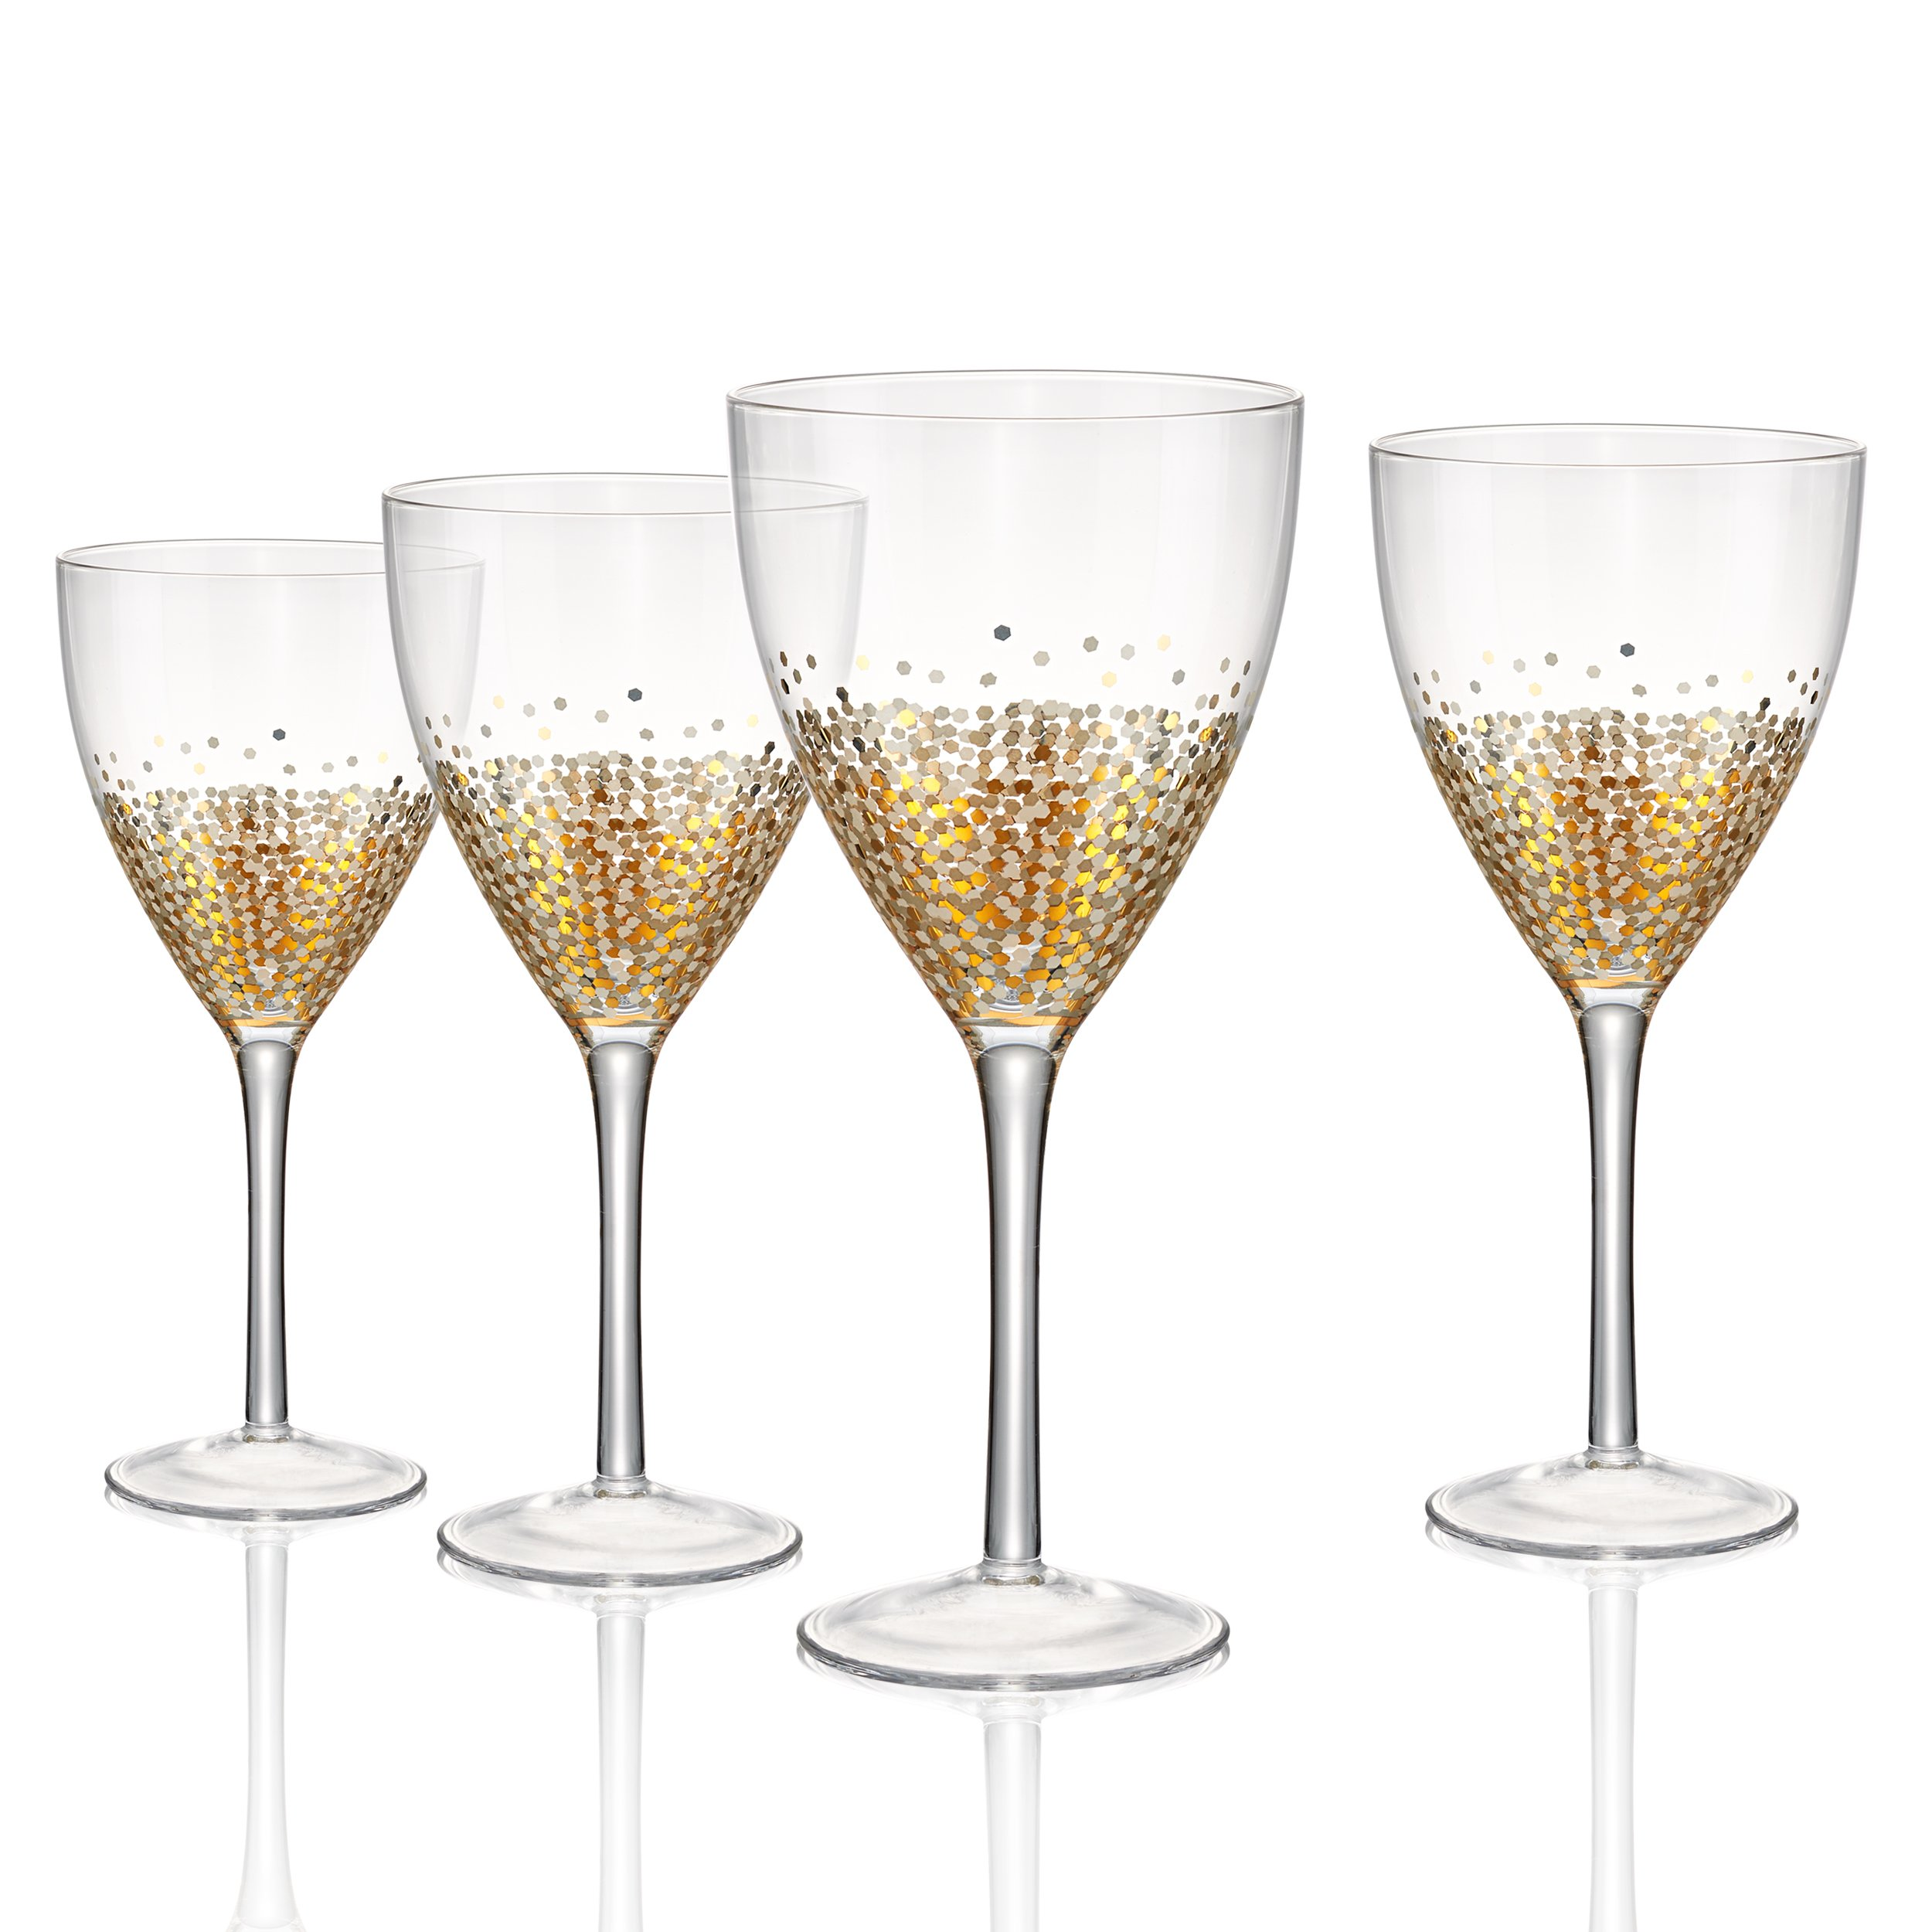 Artland Ambrosia Goblet 14 oz (Set of 4), Gold/Silver